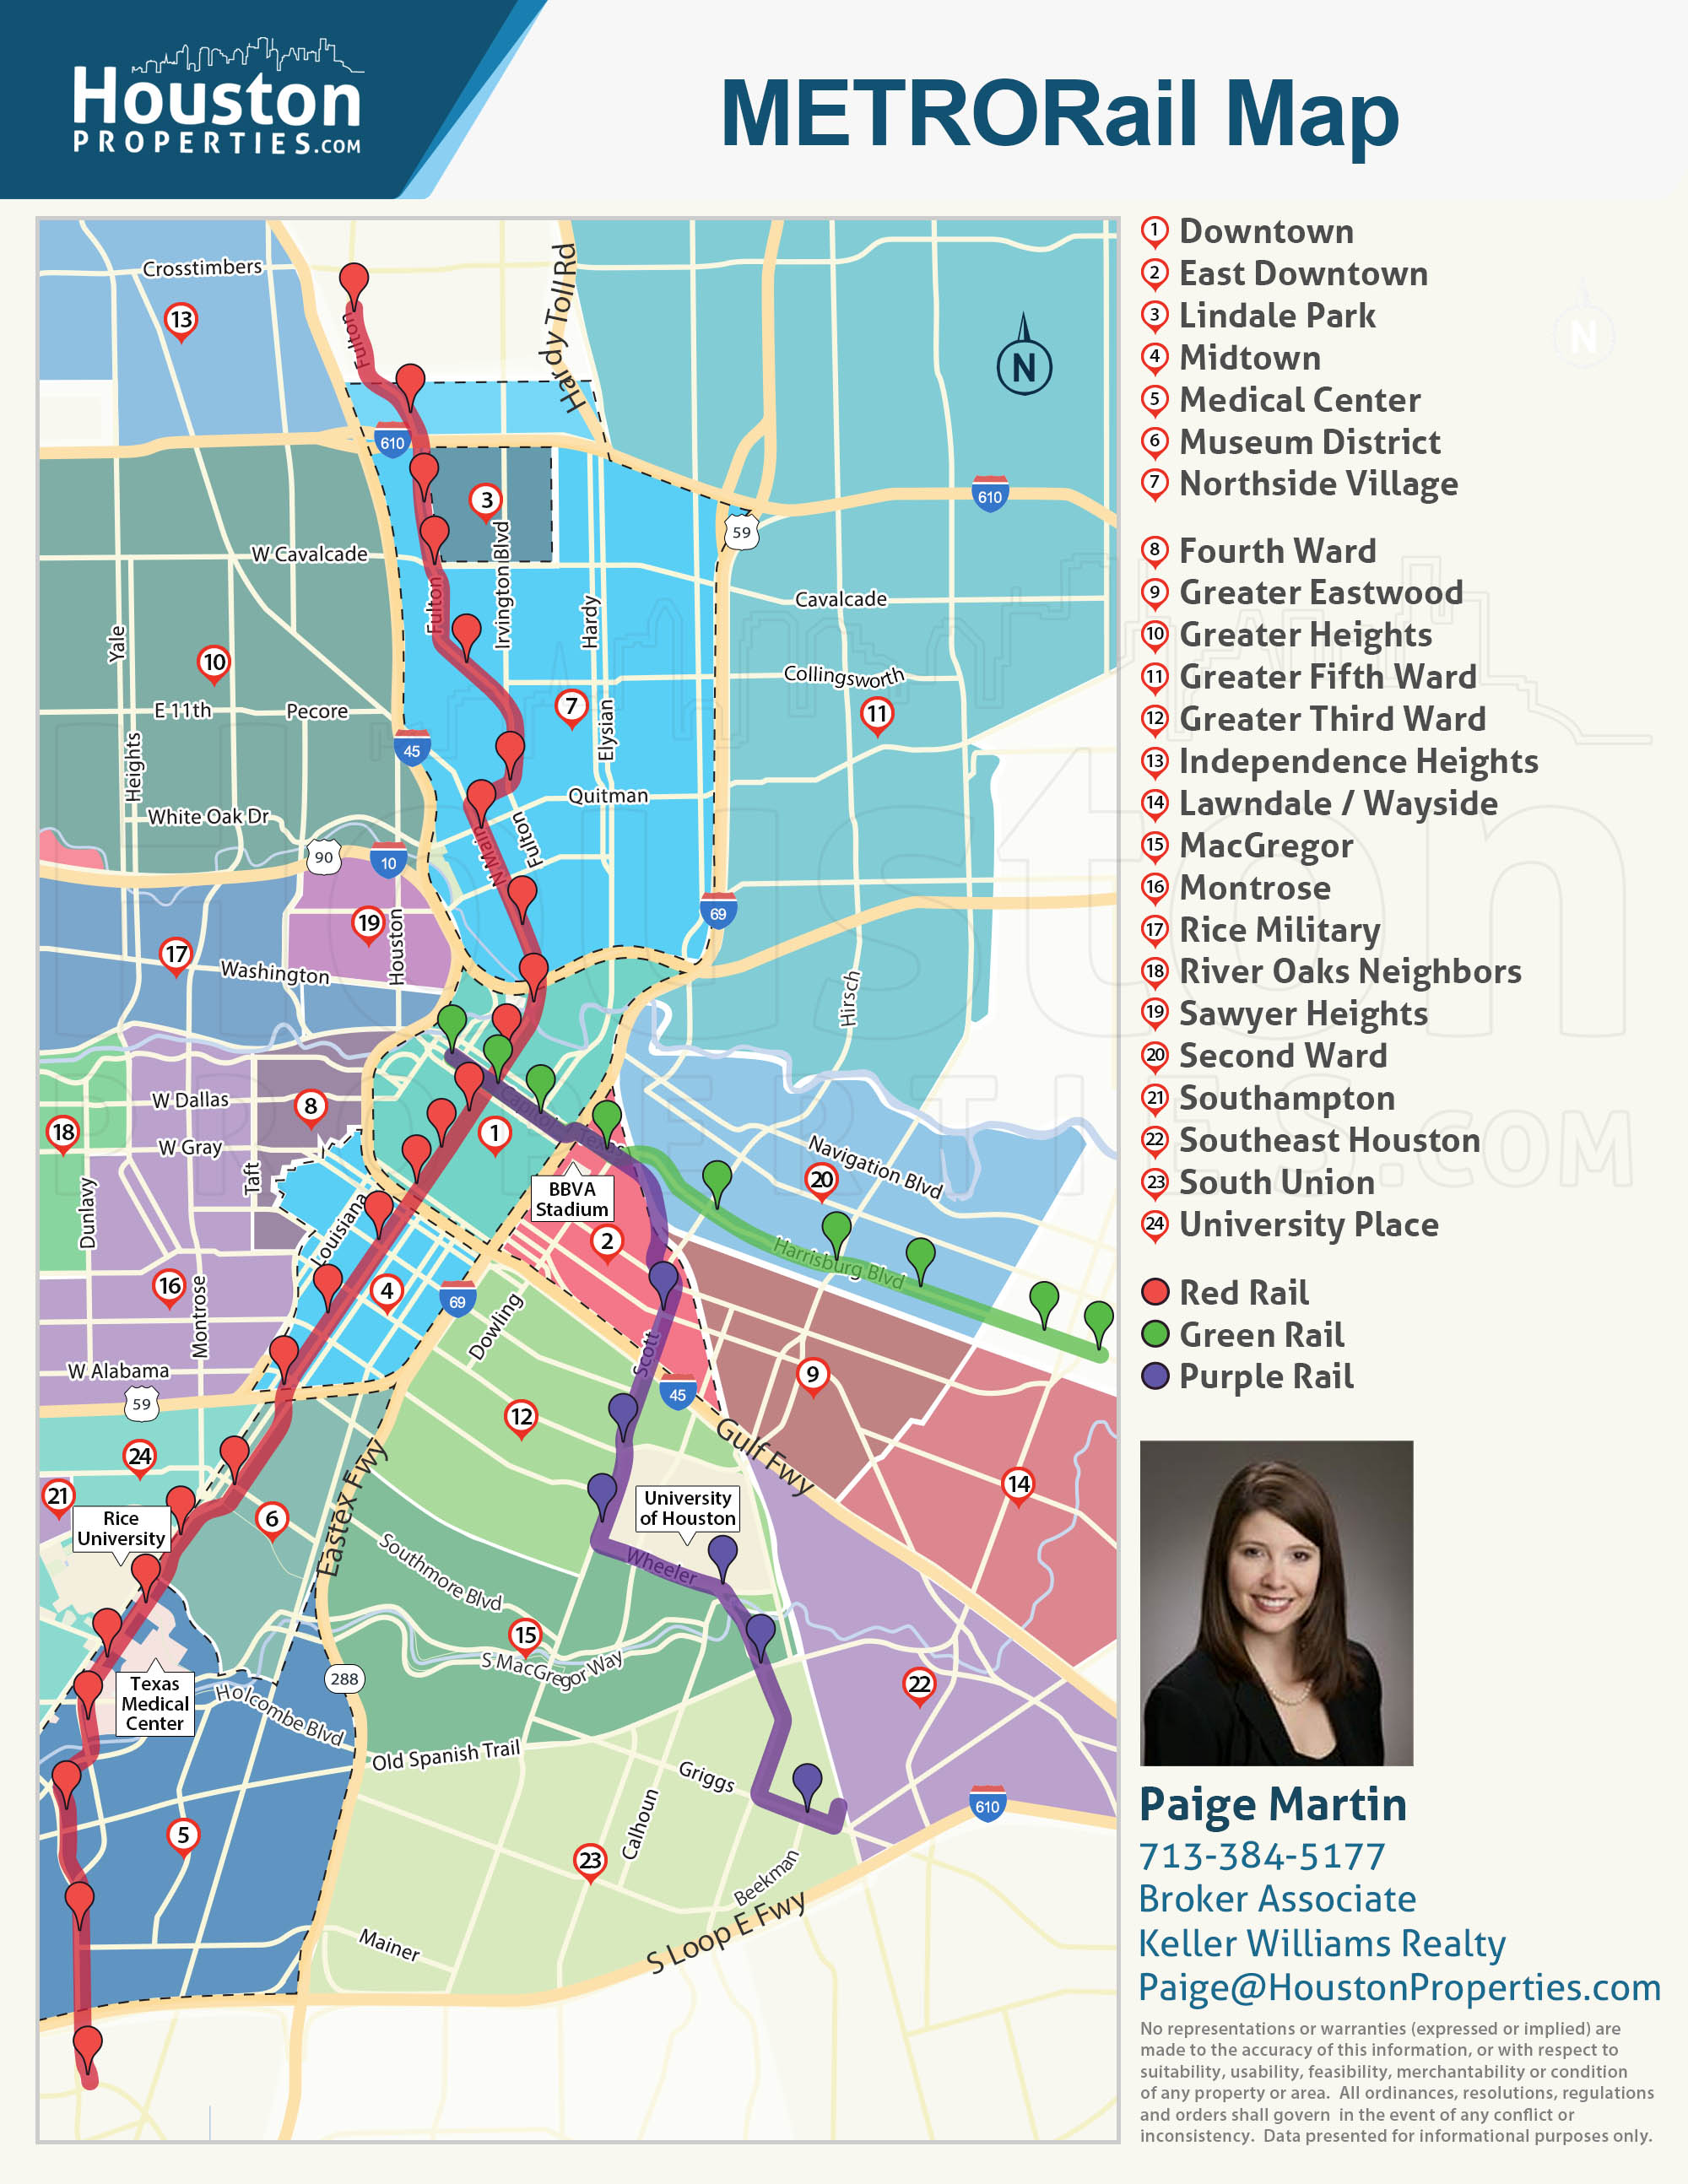 Houston METRO Rail Map Neighborhoods Near METRORail